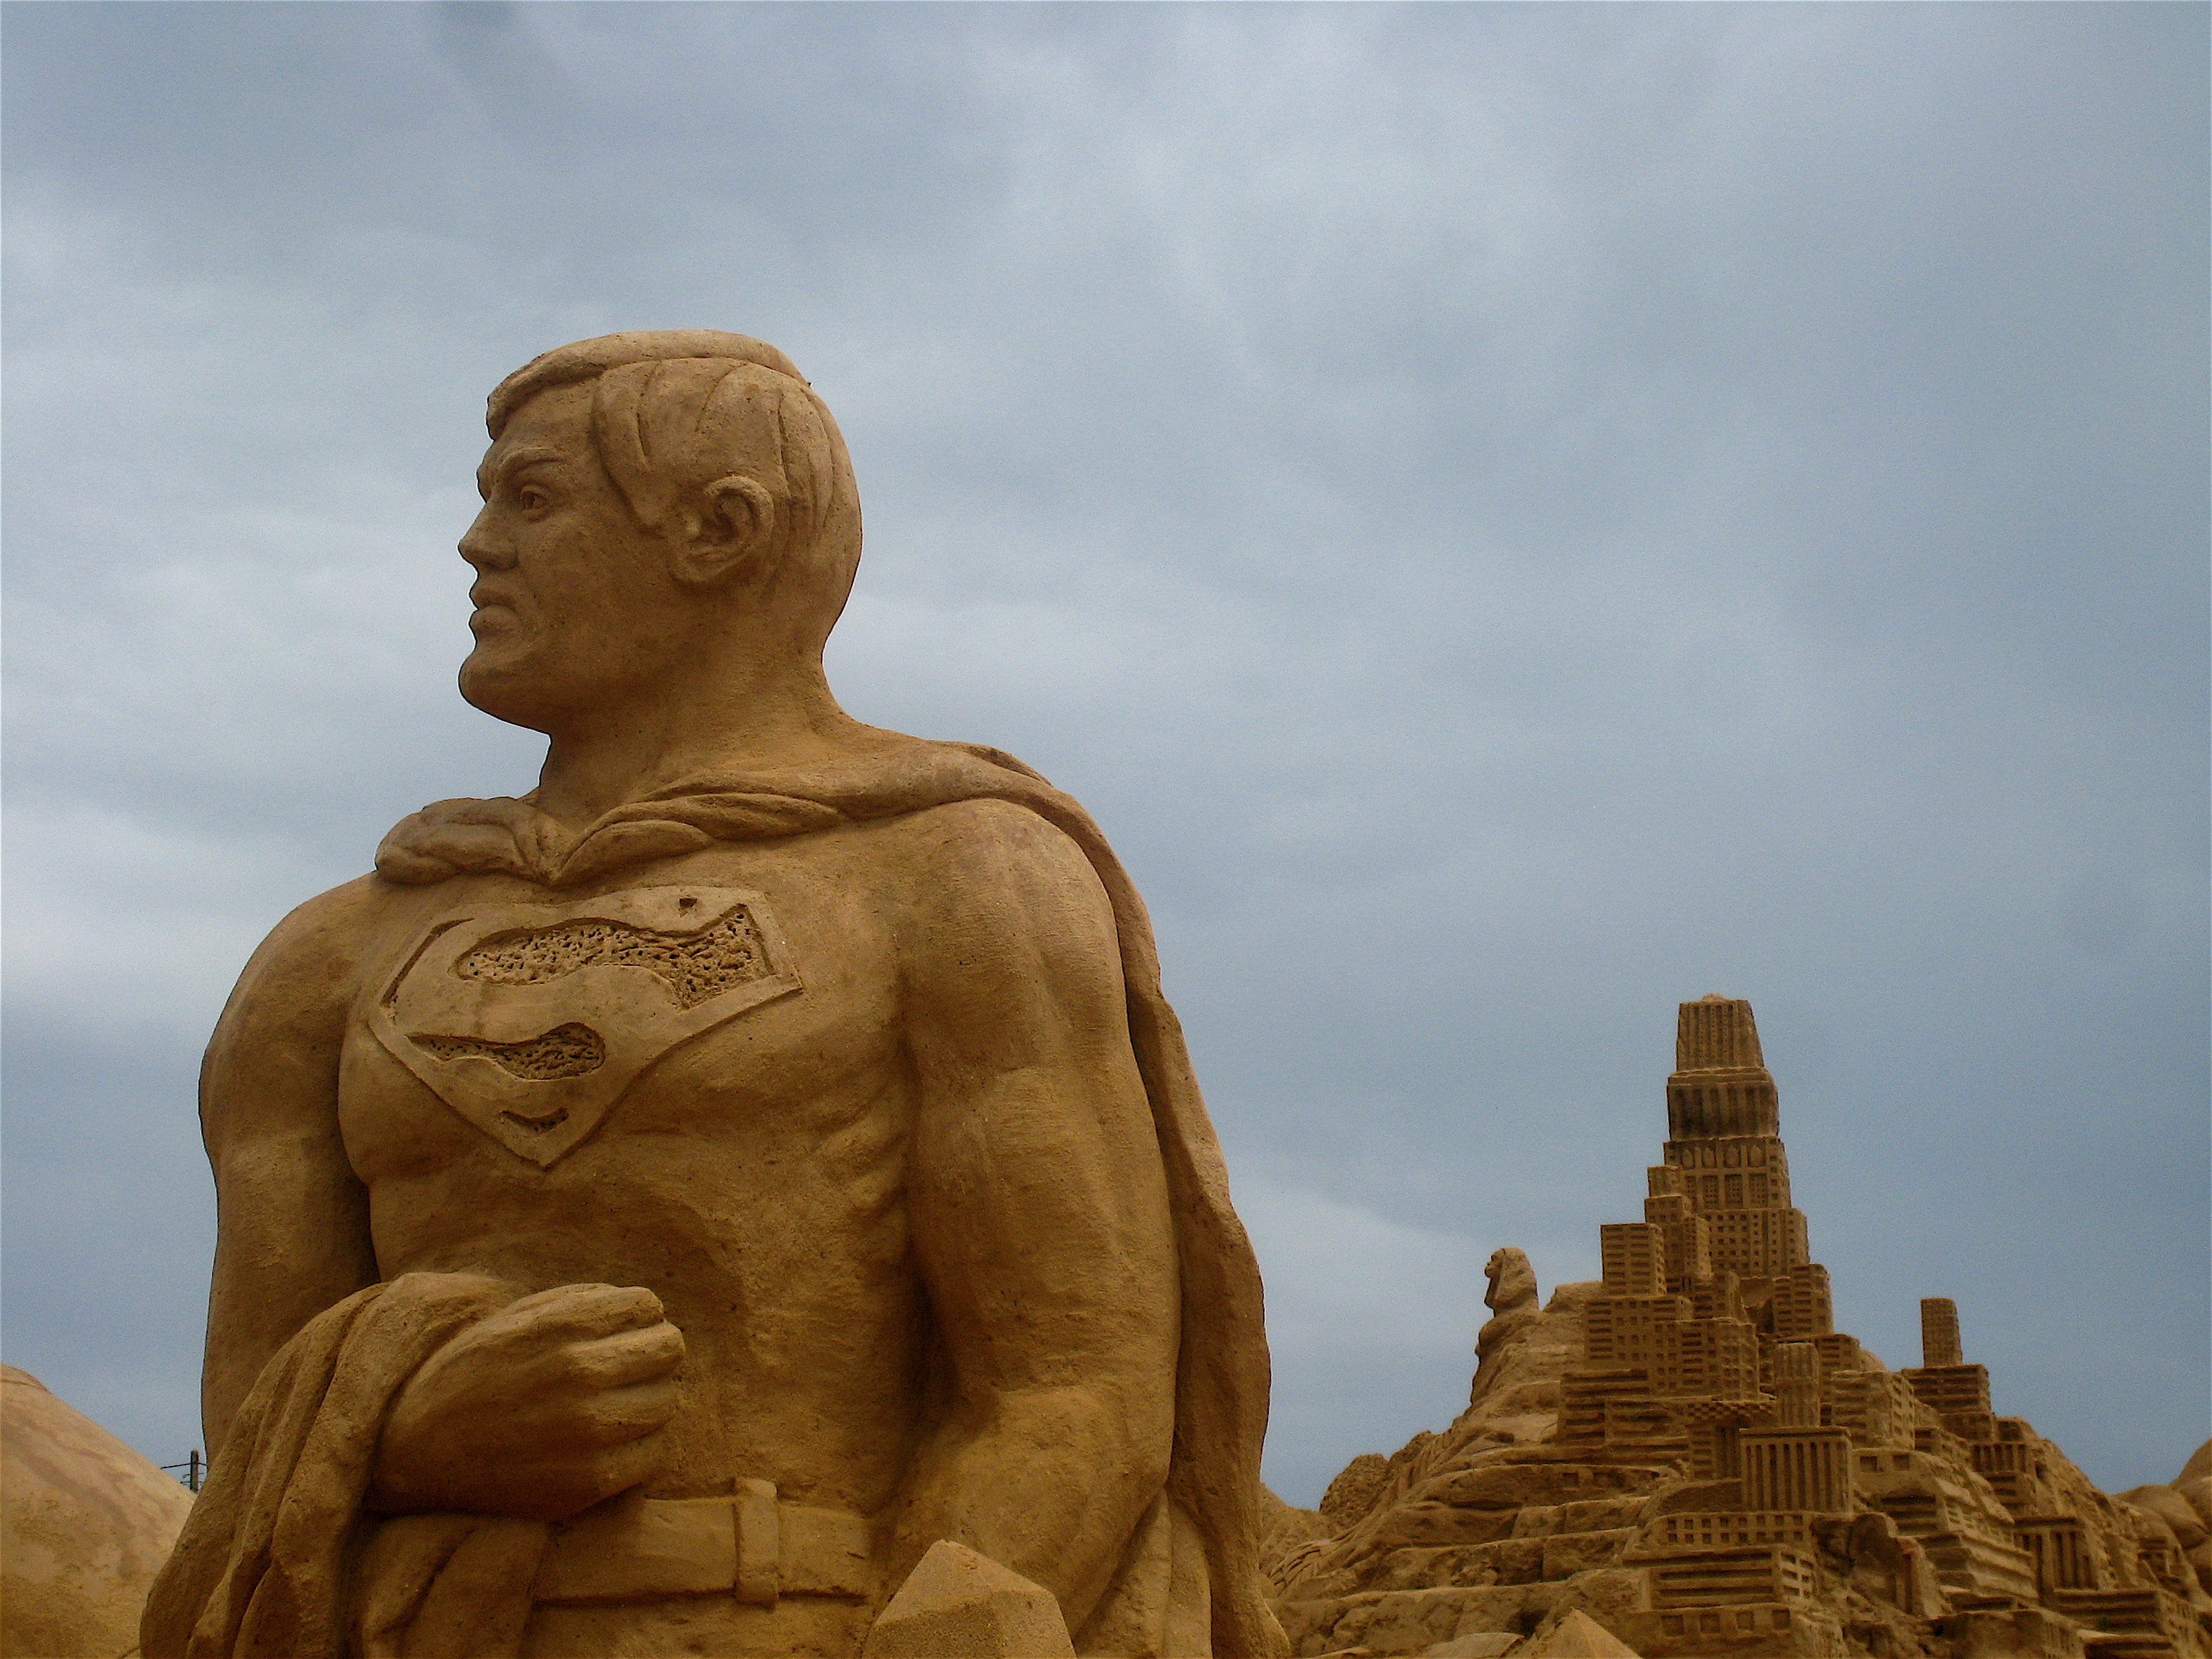 Sand sculptures - Page 2 2538815520_506eee77cd_o